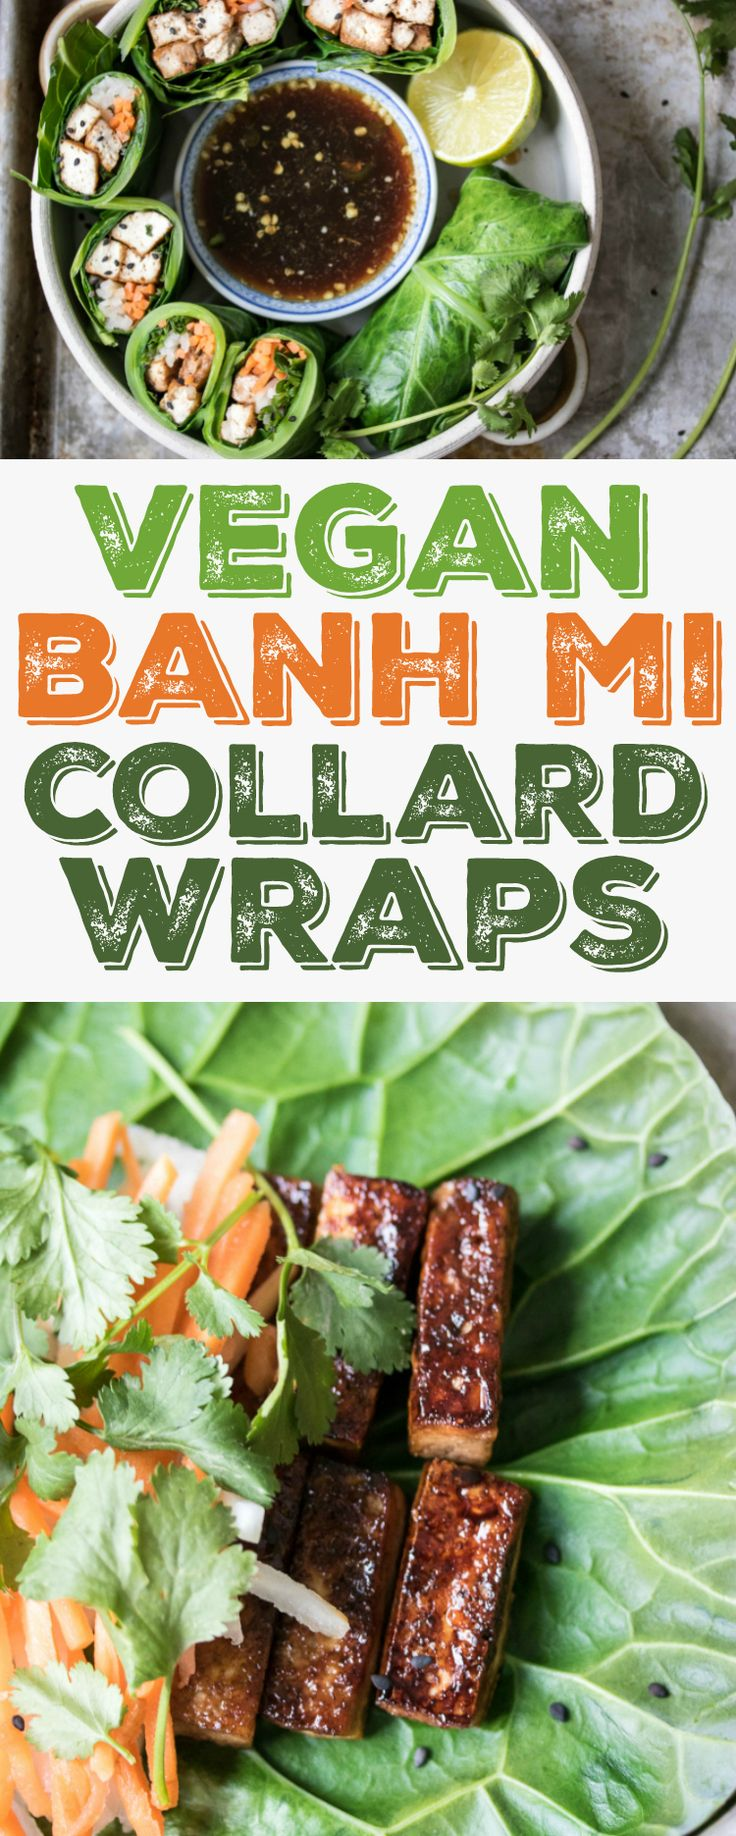 These Banh Mi Collard Wraps are filled with caramelized tofu and fresh Vietnamese flavor!